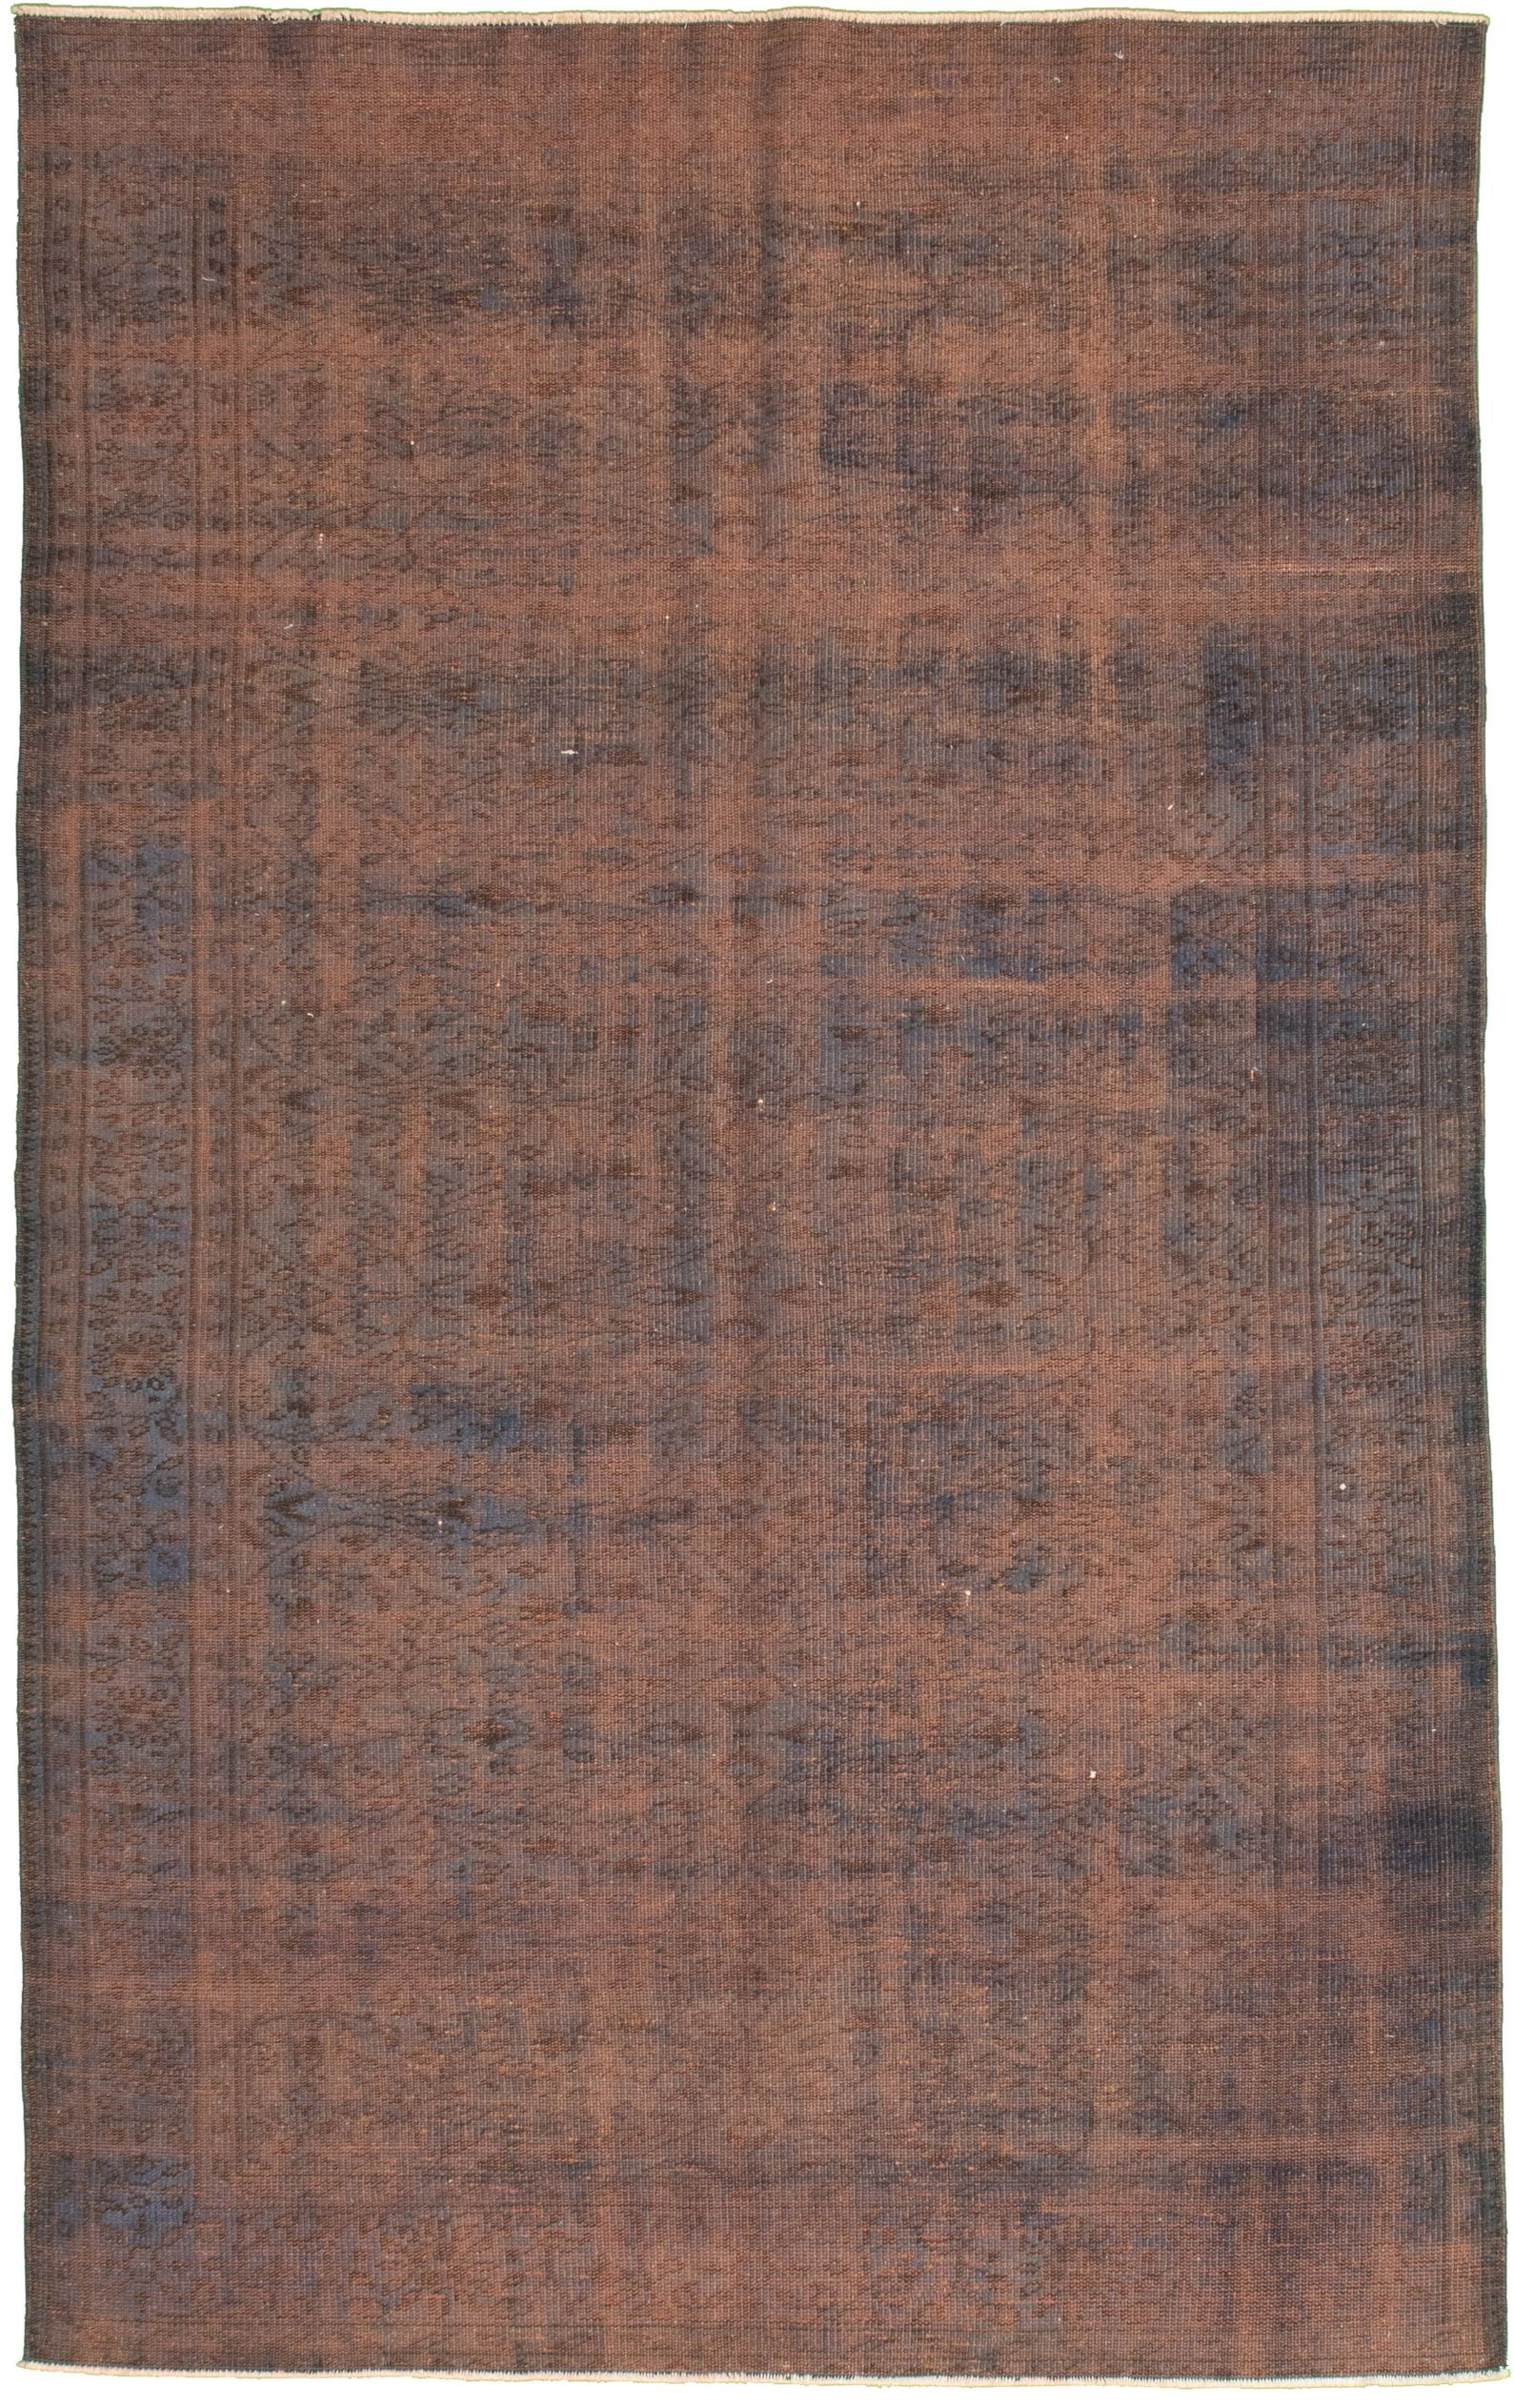 """Hand-knotted Color Transition Blue Wool Rug 5'9"""" x 9'4"""" Size: 5'9"""" x 9'4"""""""